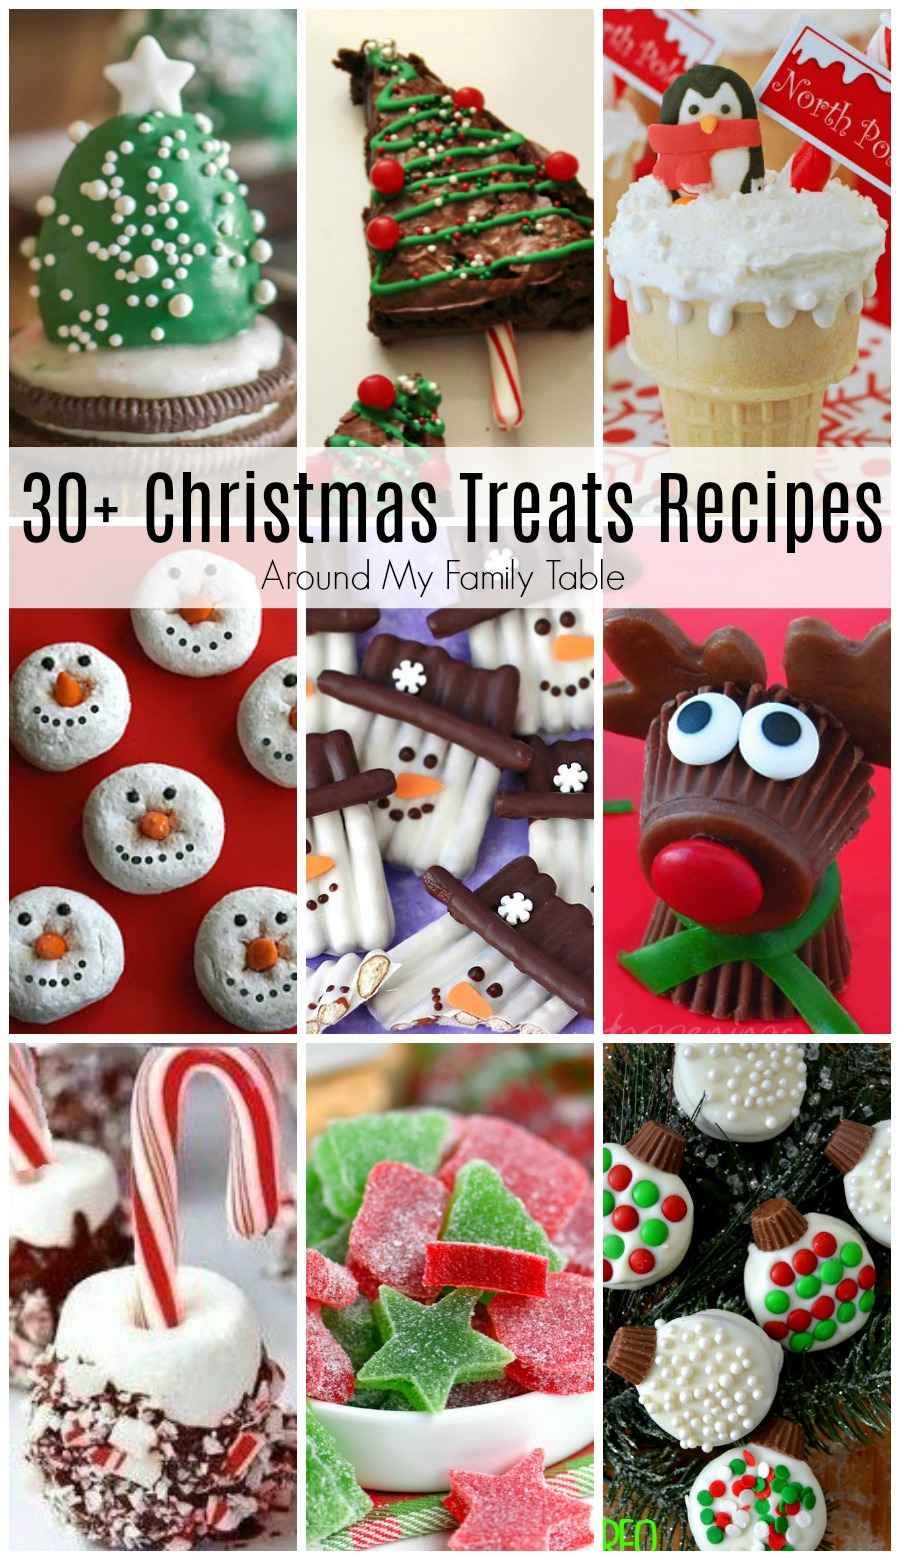 These are the best Christmas Treats Recipes for you and your kids to make this season.